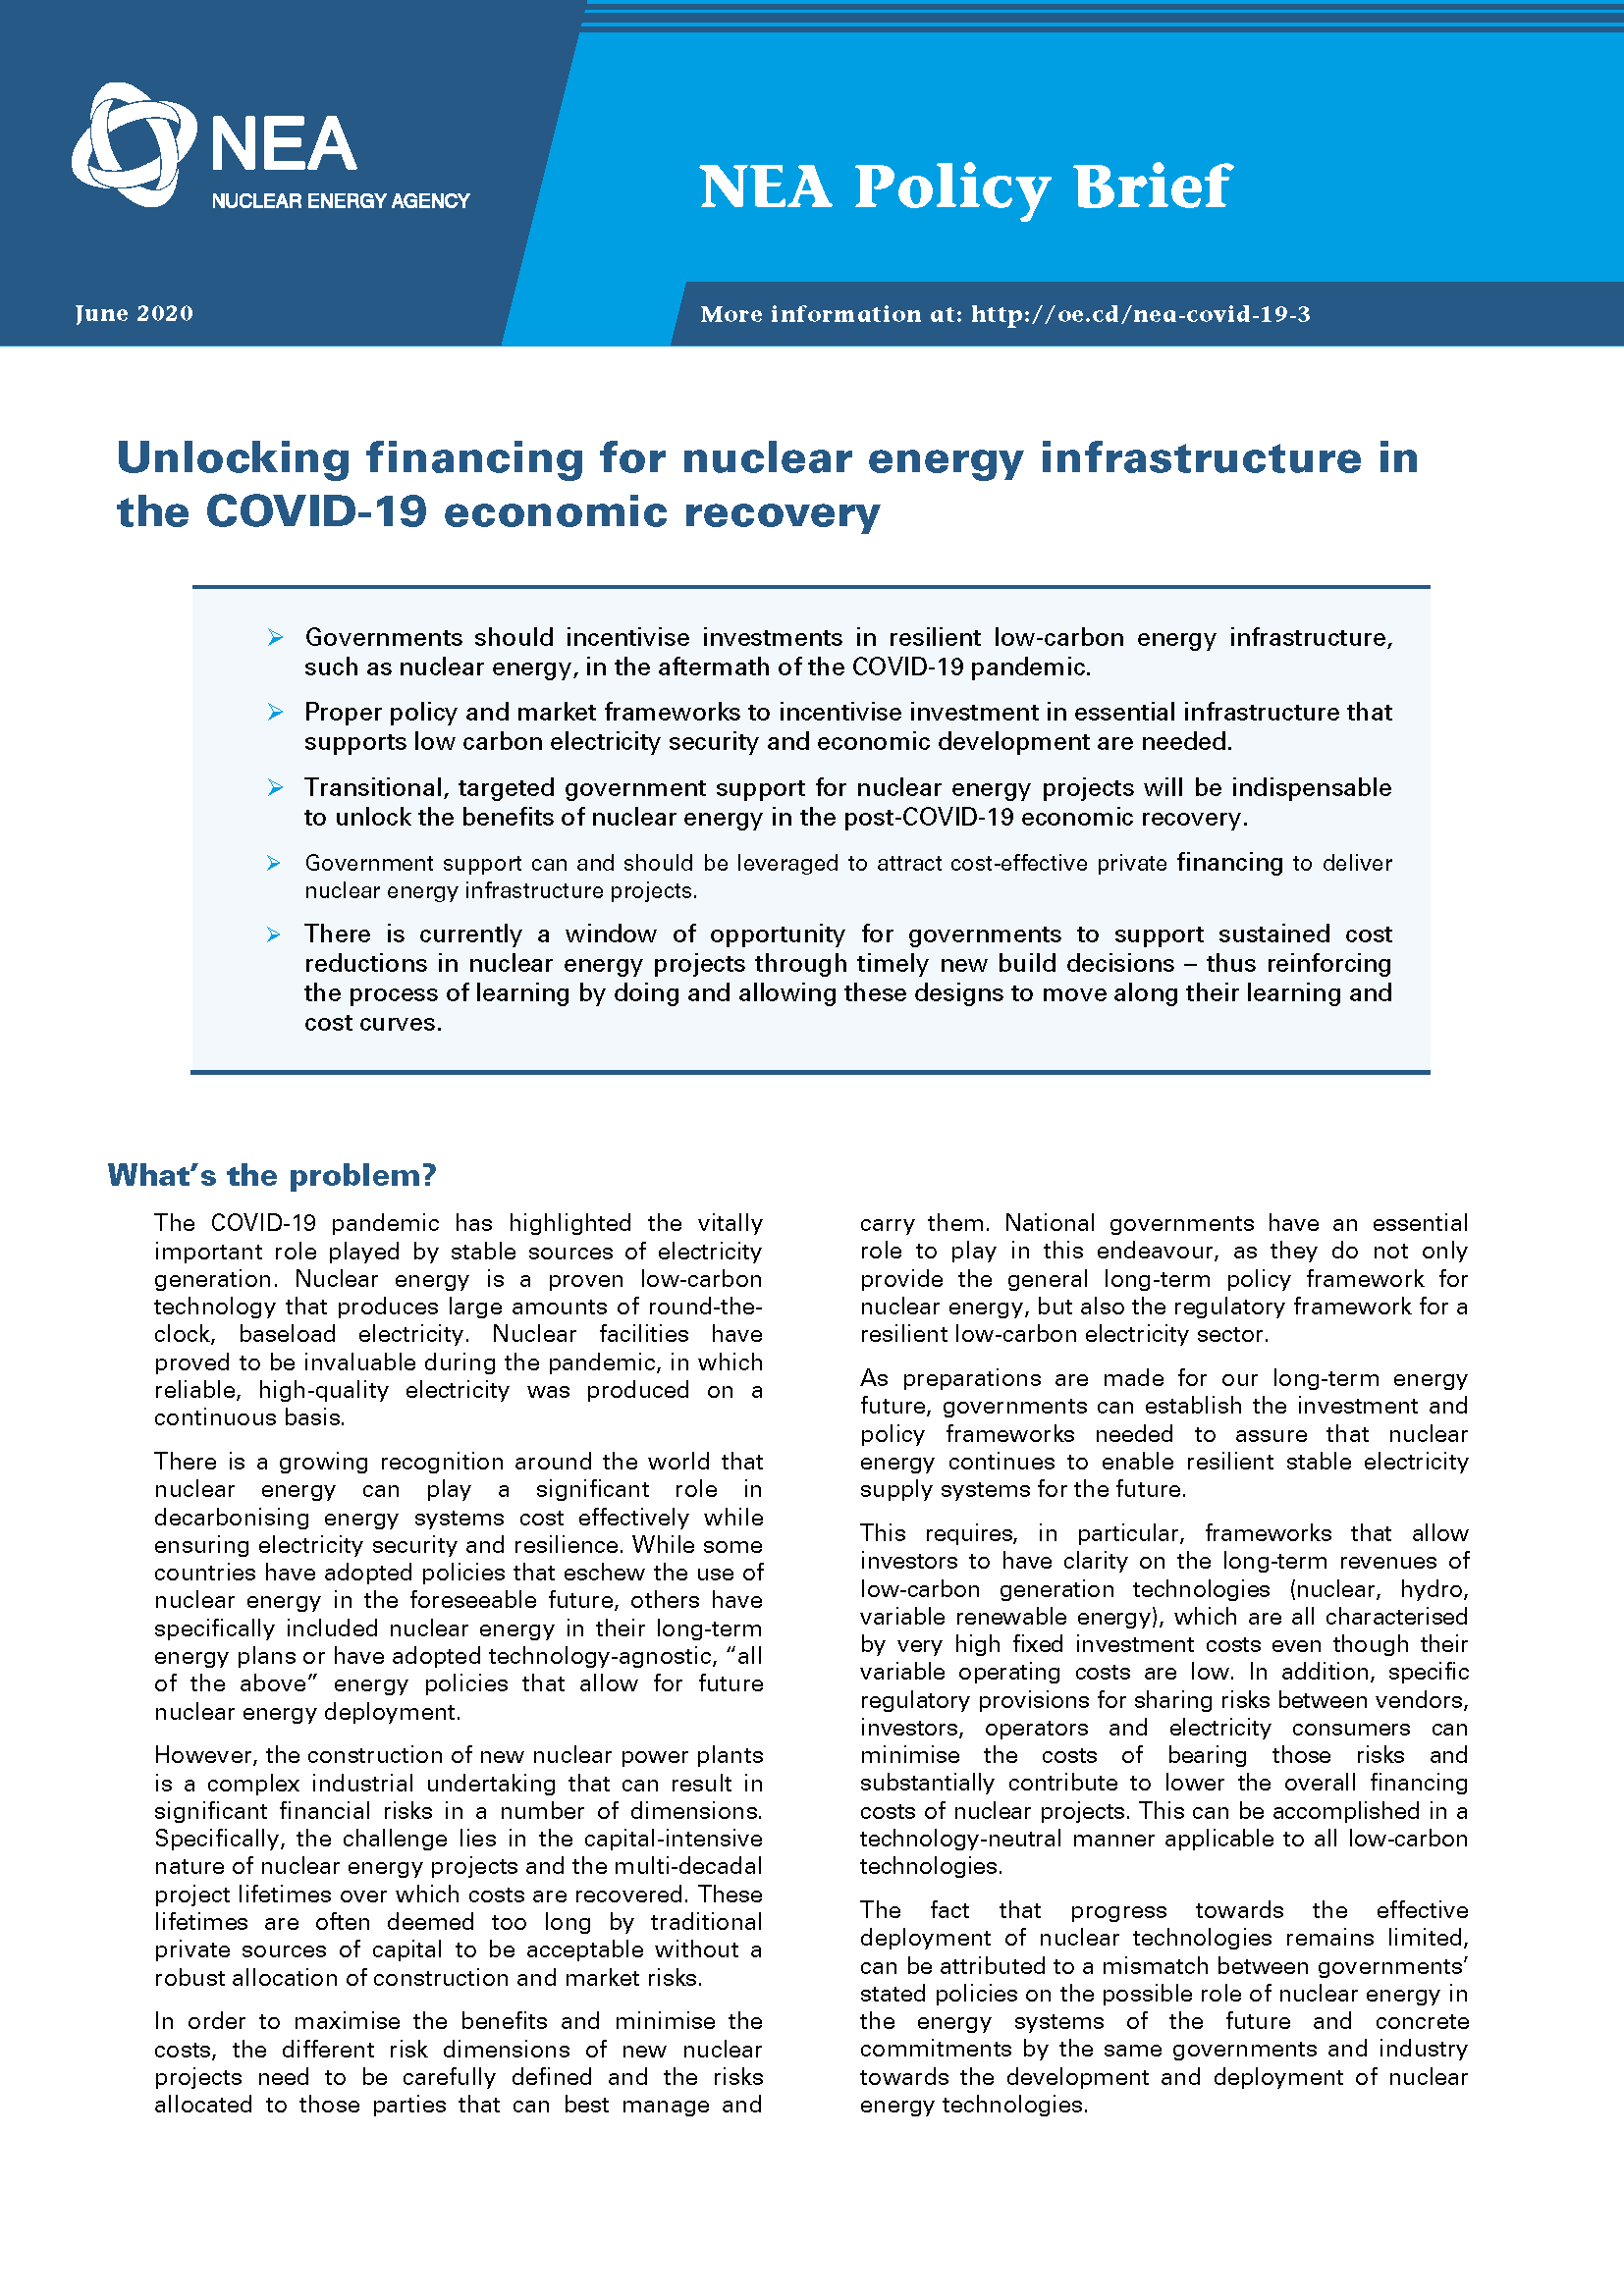 Unlocking financing for nuclear energy infrastructure in the COVID-19 economic recovery